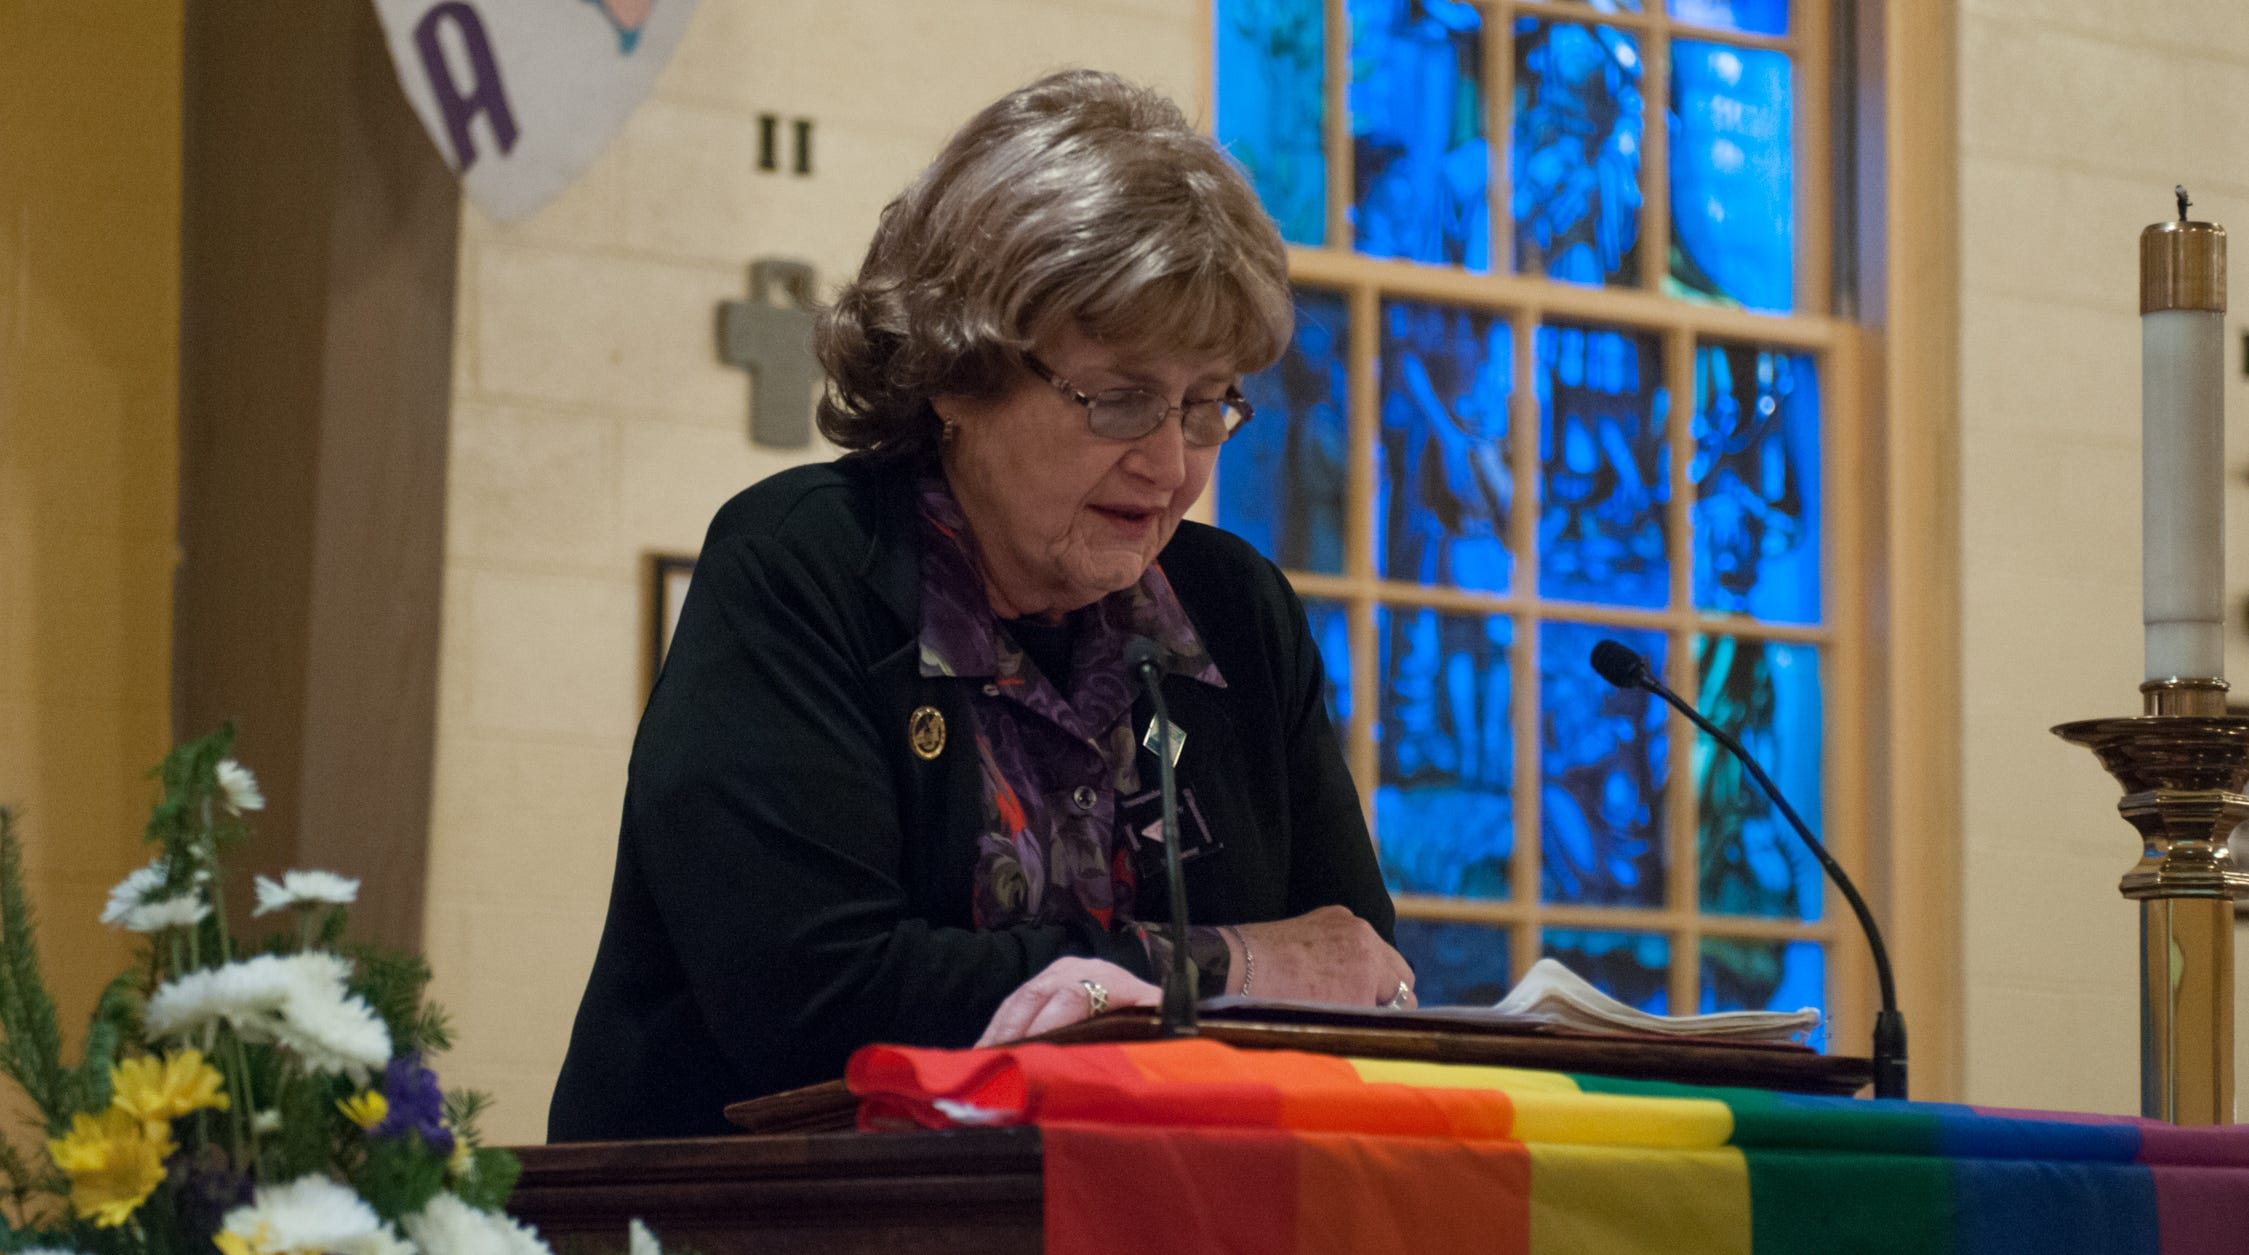 Remembering Babs Siperstein, the first lady of New Jersey transgender activism